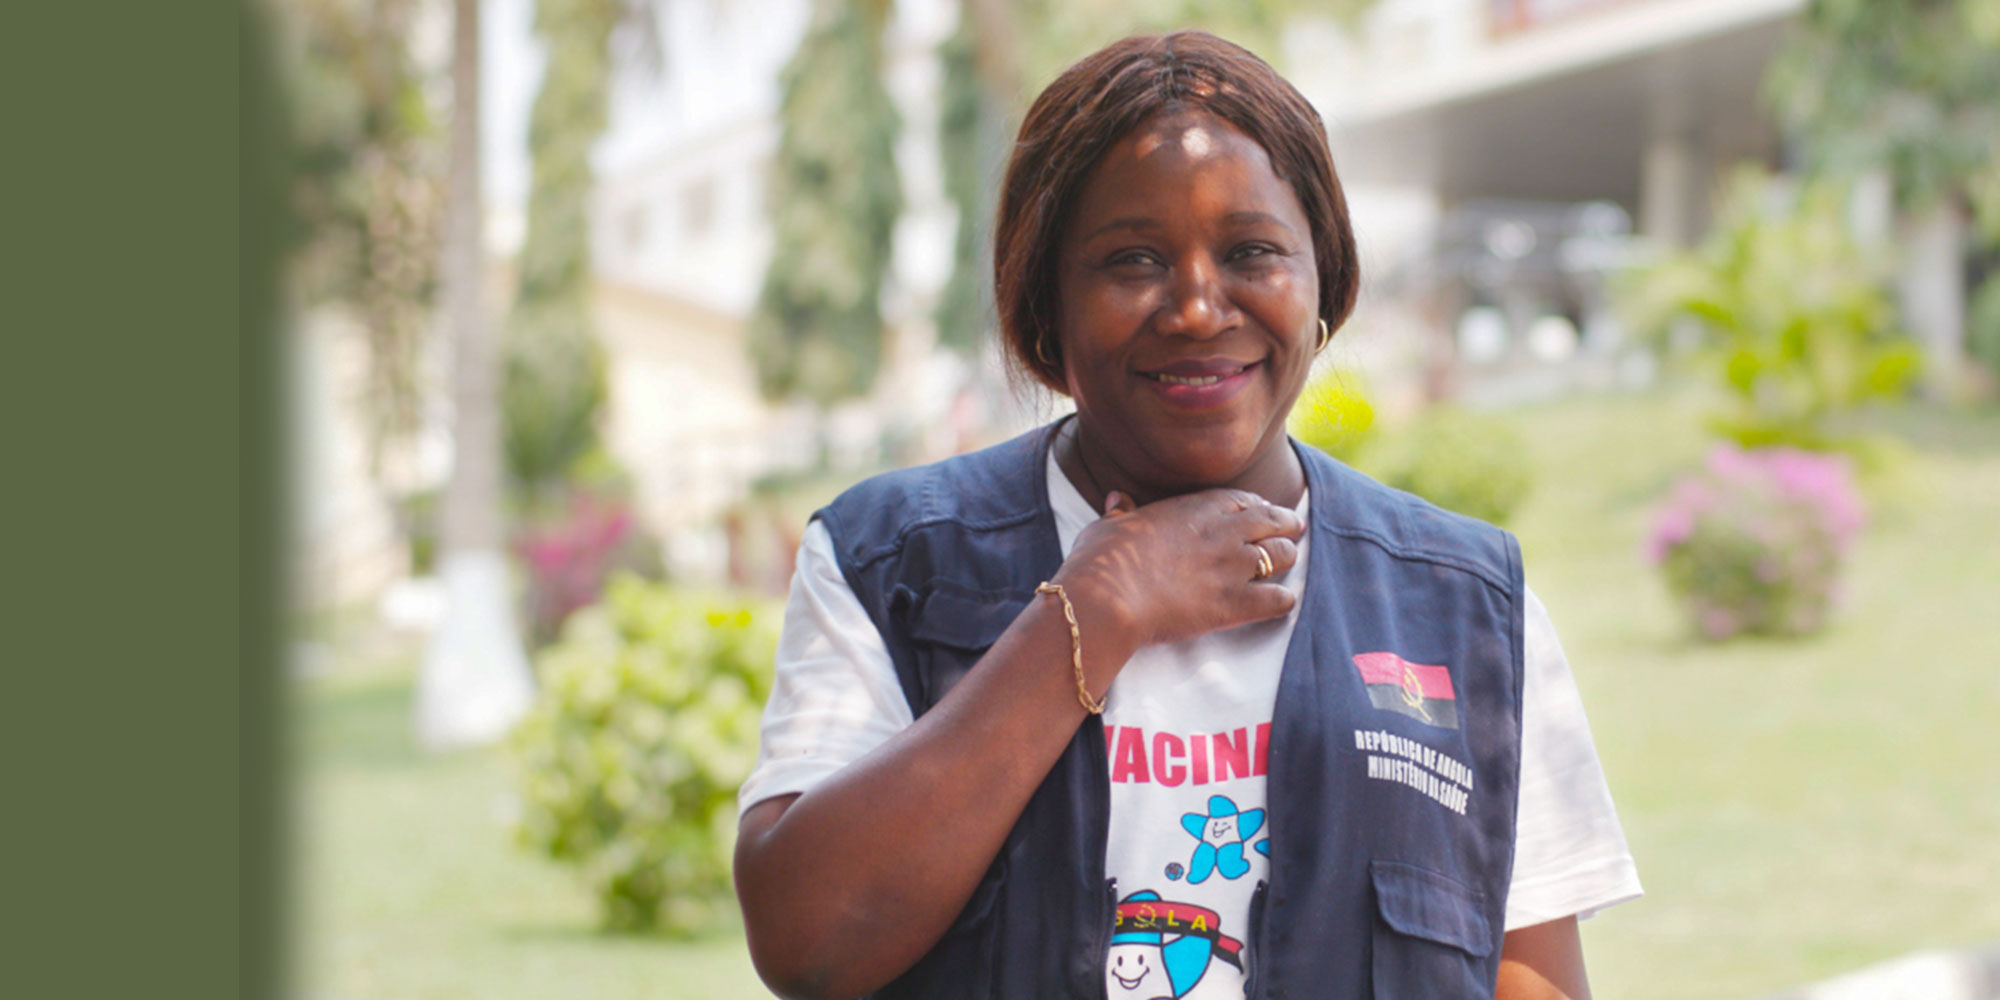 Dr. De Sousa has dedicated her career to ending polio in Angola. ©Alda De Sousa